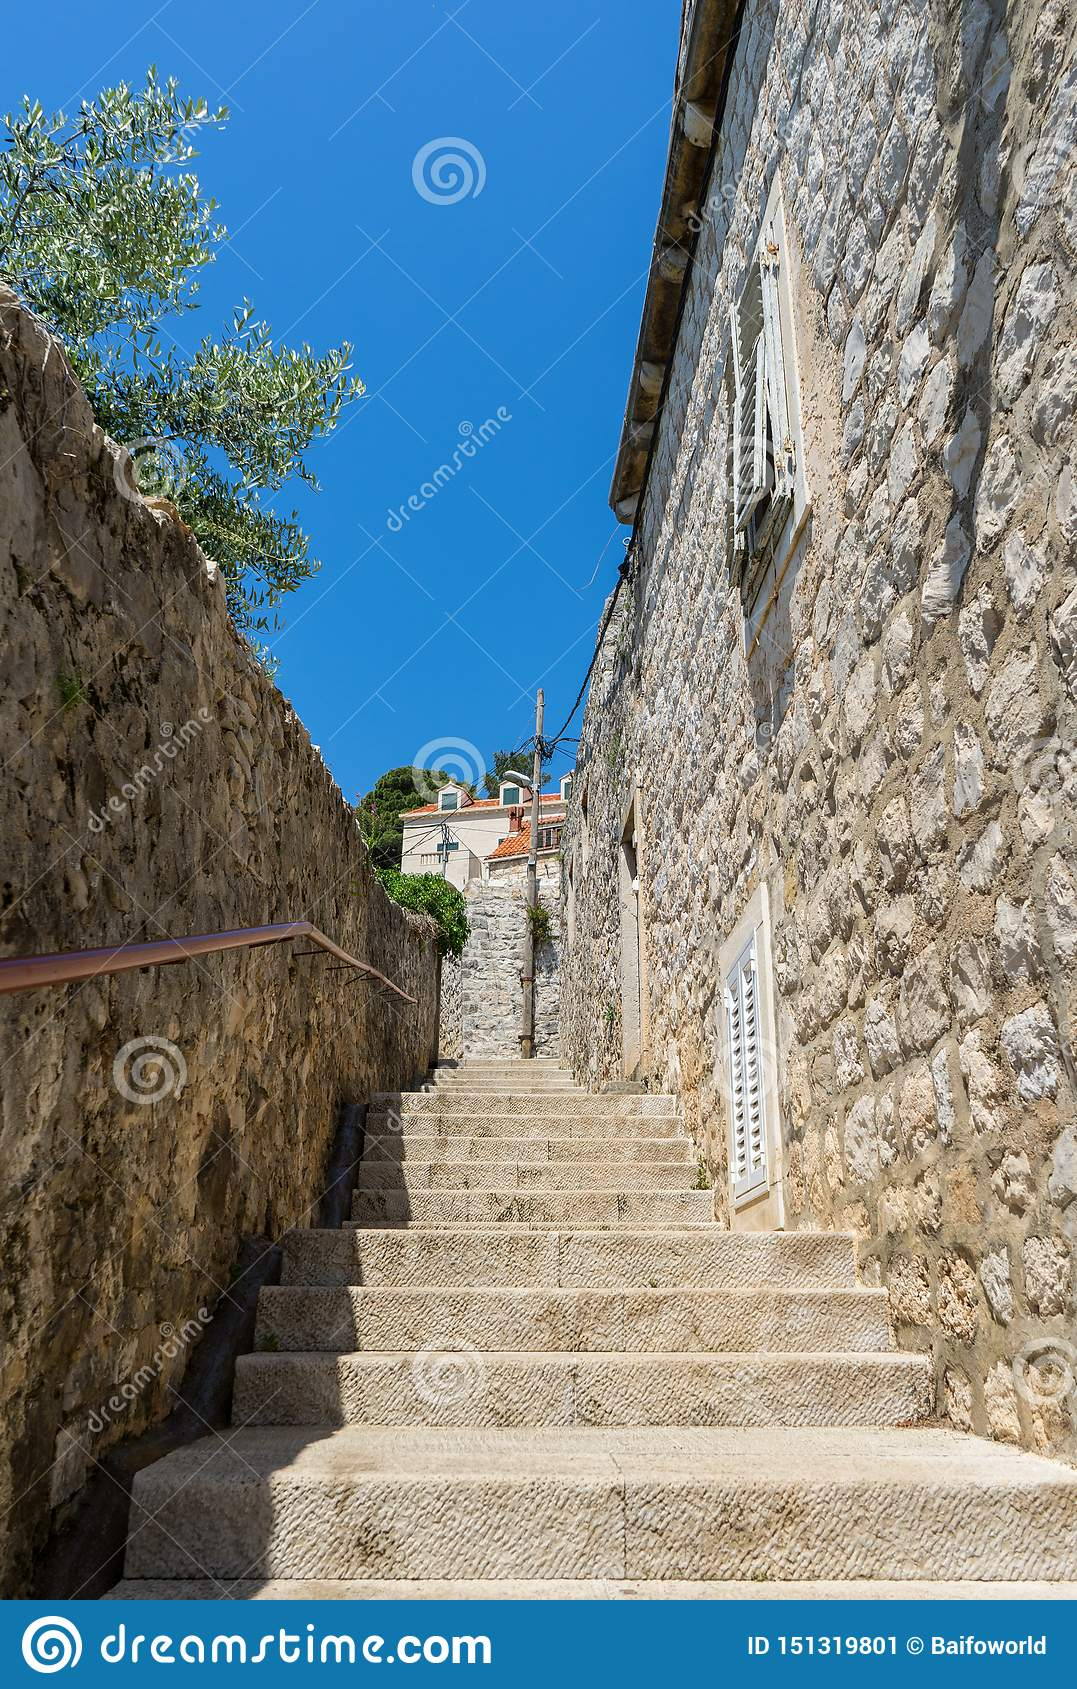 narrow stone stairs between old residential area in croatia. Adriatic coast village with stone houses and Old stone street of